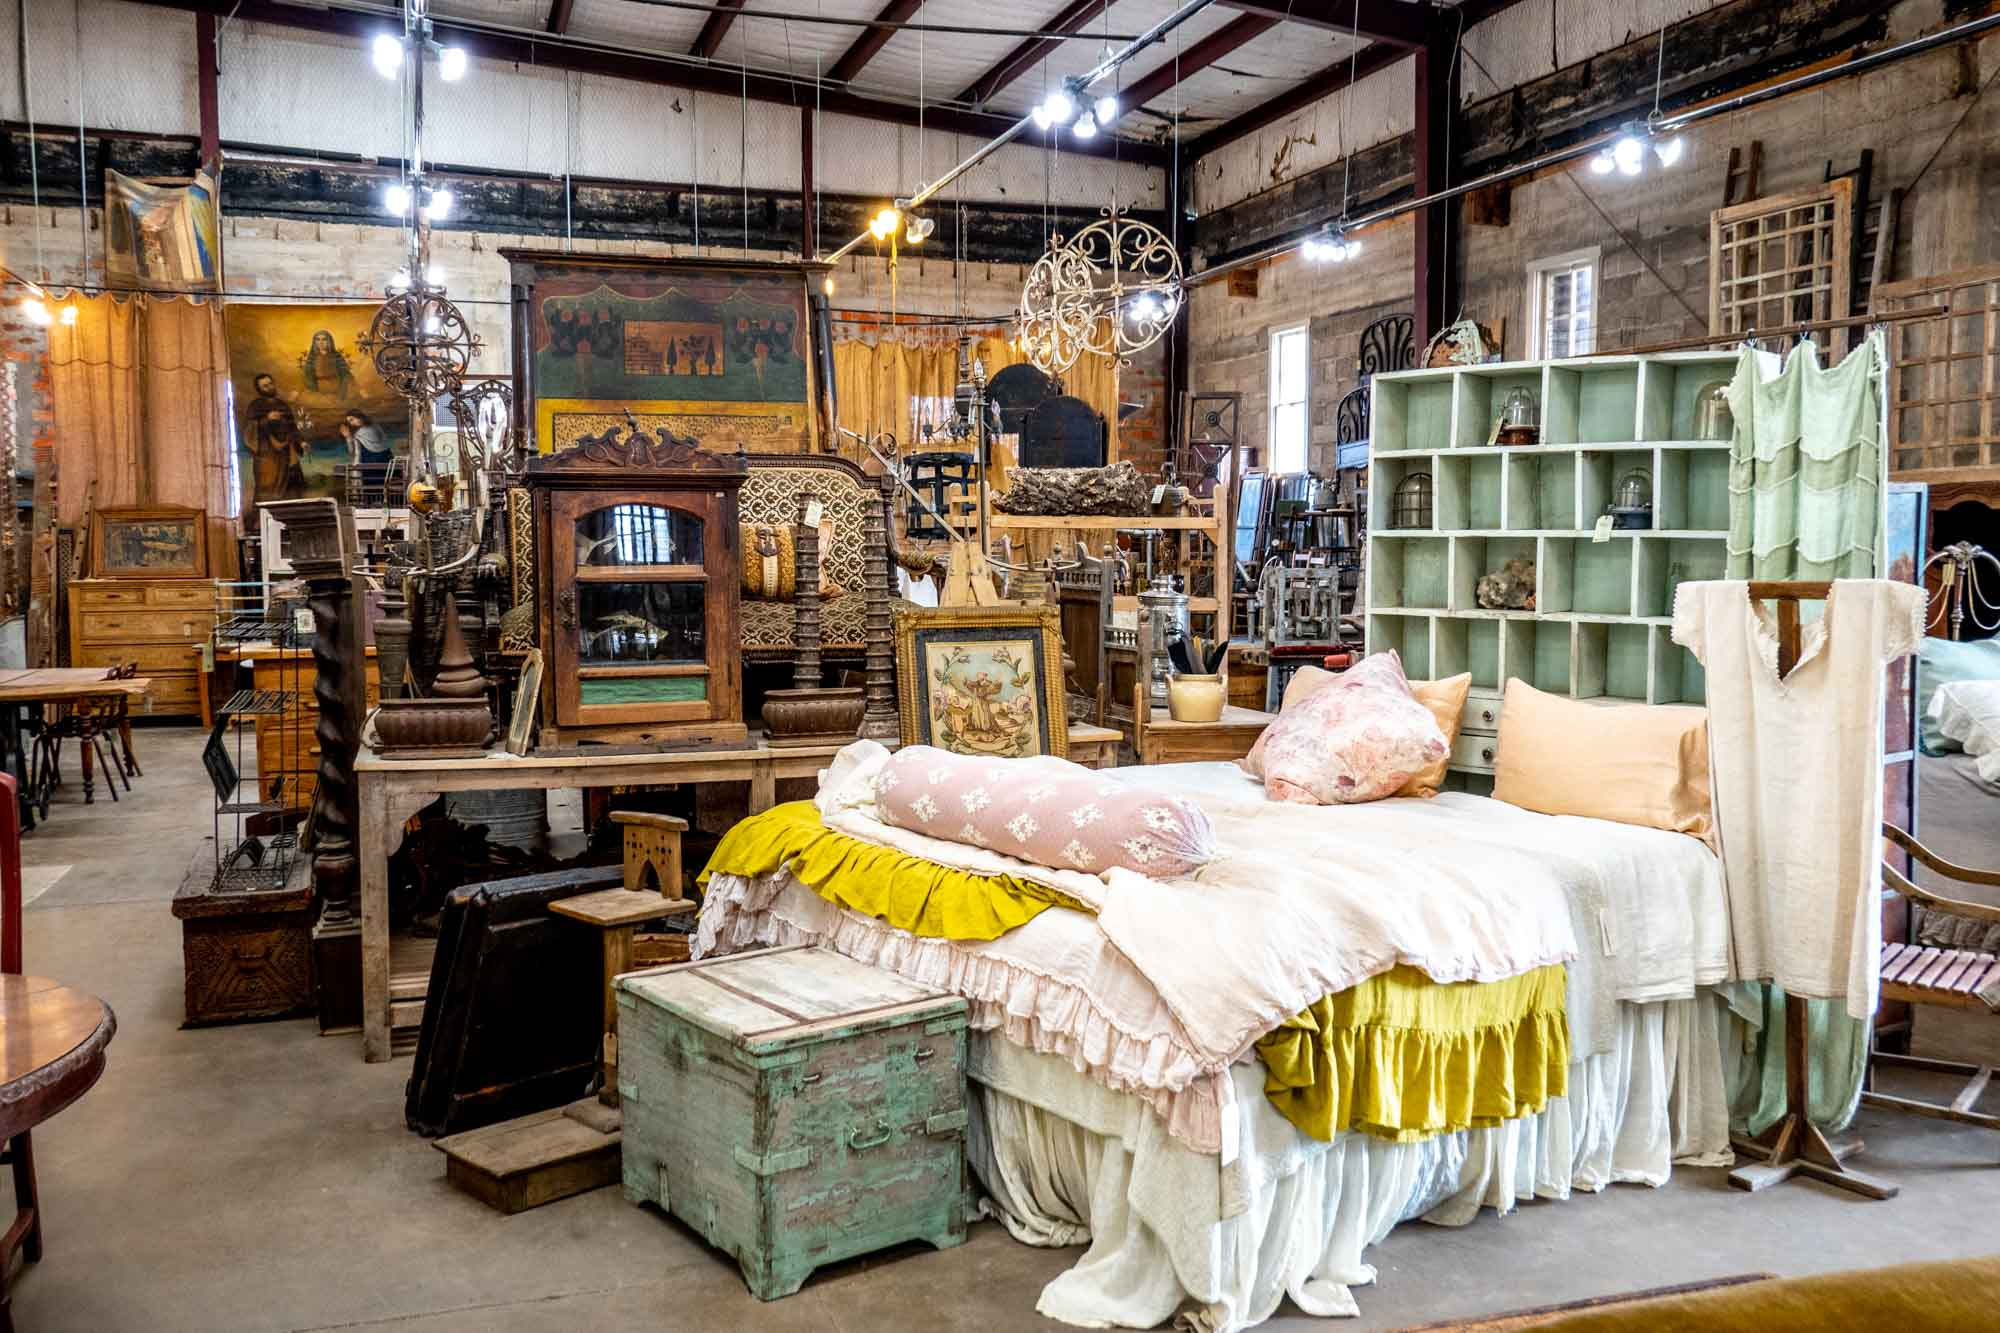 Bed and an assortment of antiques in a showroom